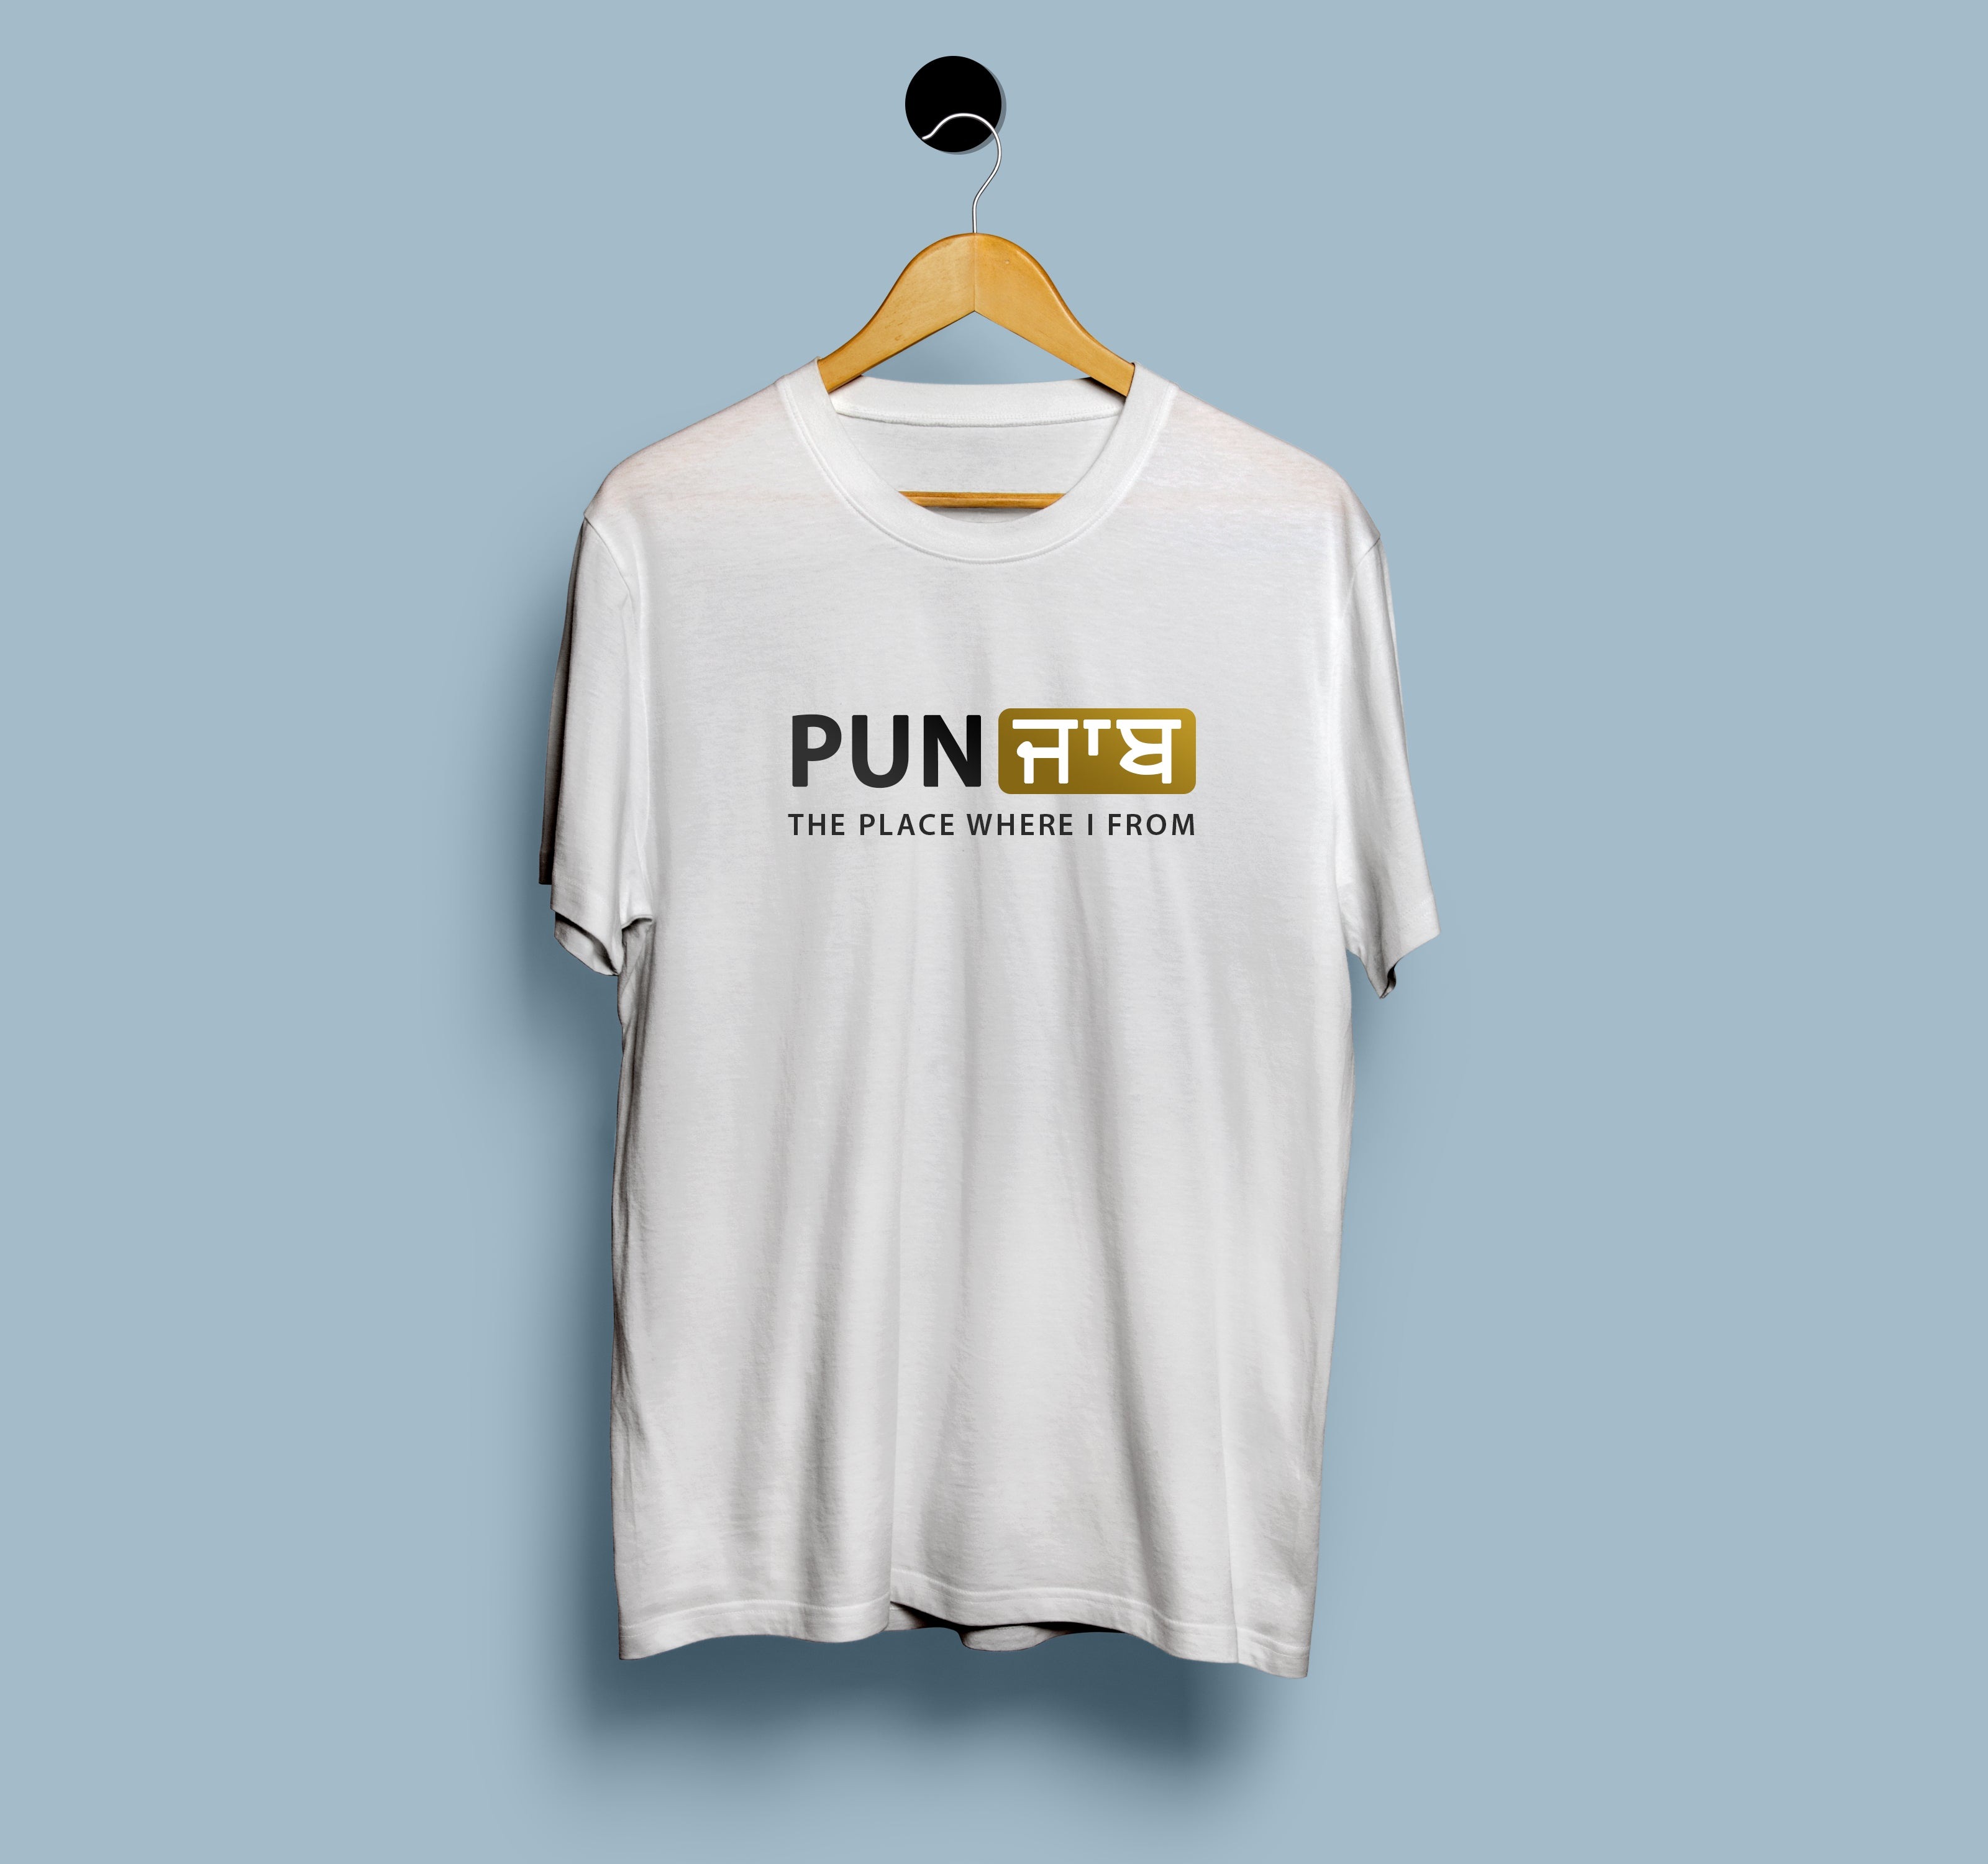 Punjab - The Place Where I From - Men T-shirt